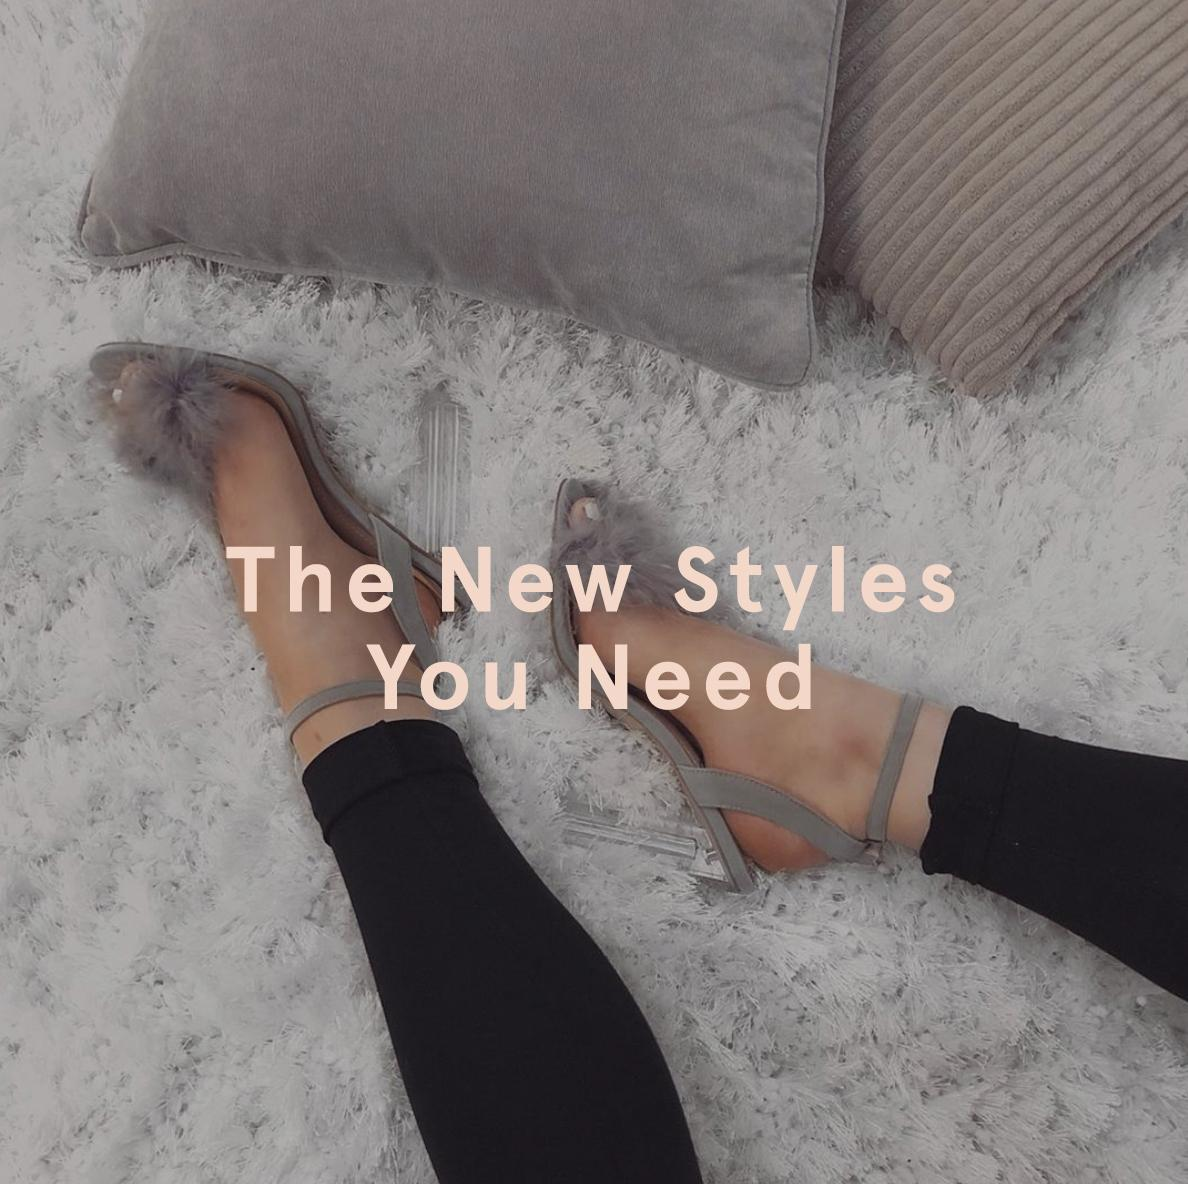 New Styles You Need